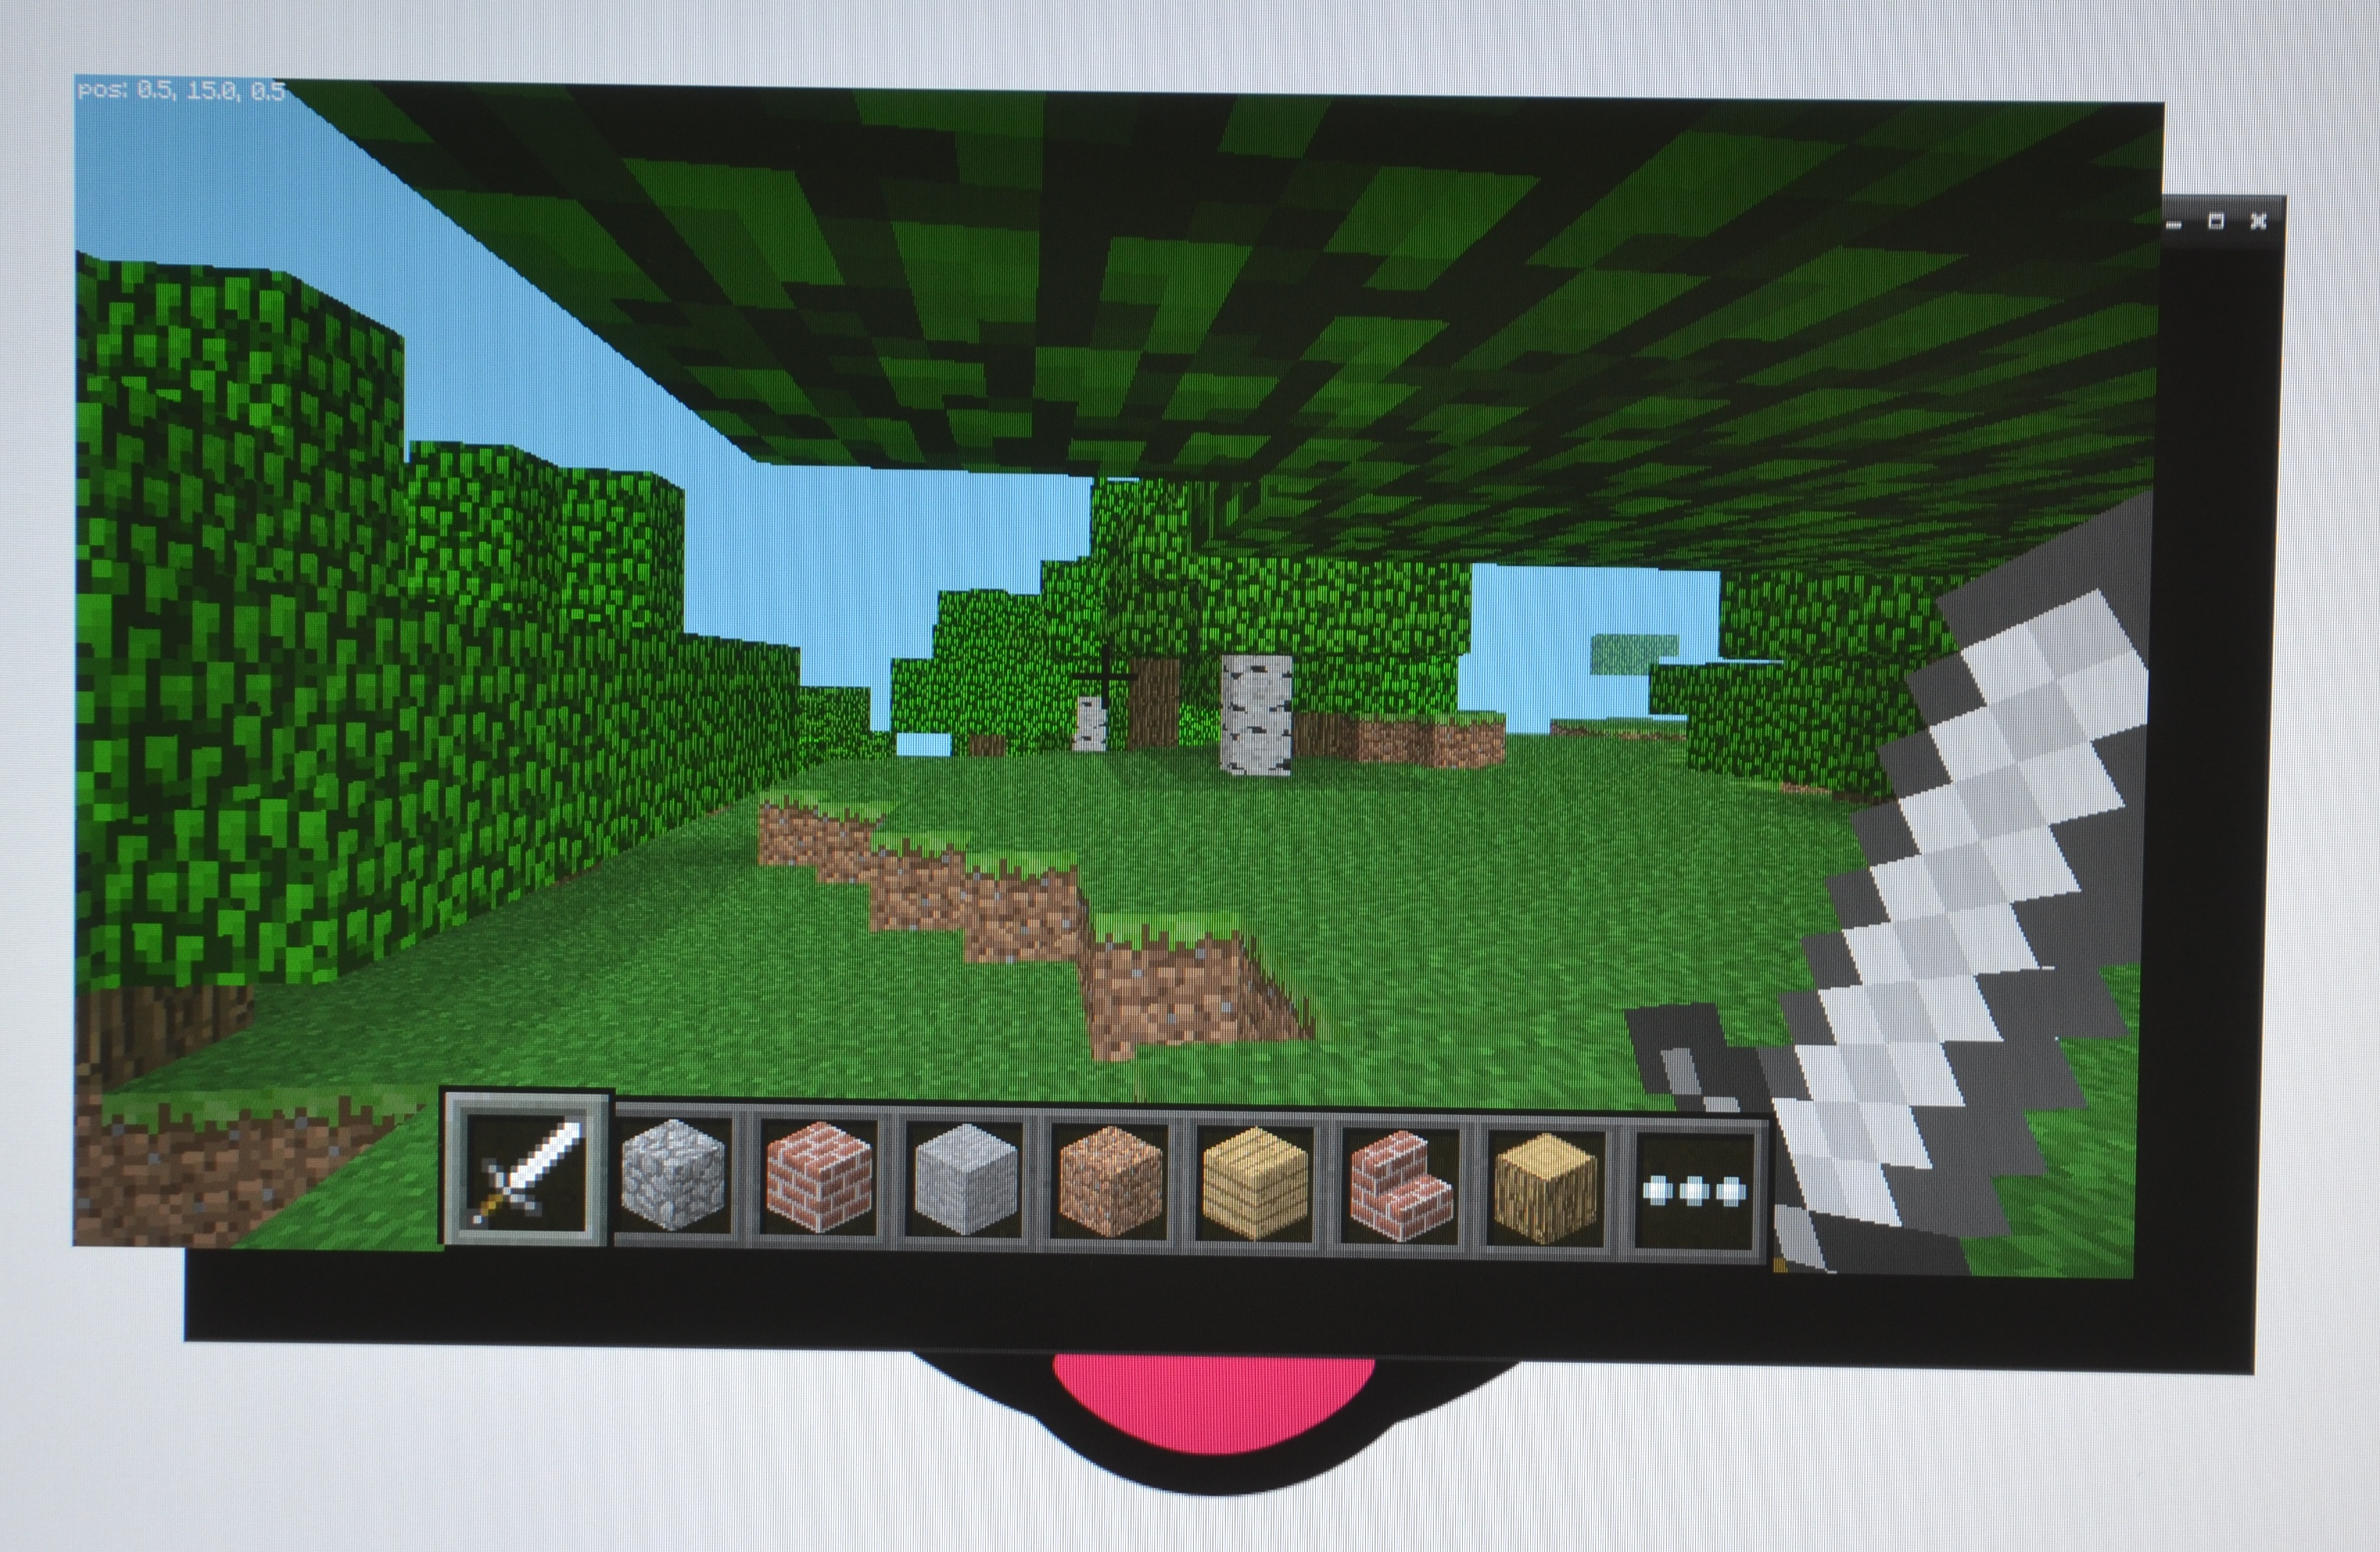 raspberry_pi_minecraft2.jpg